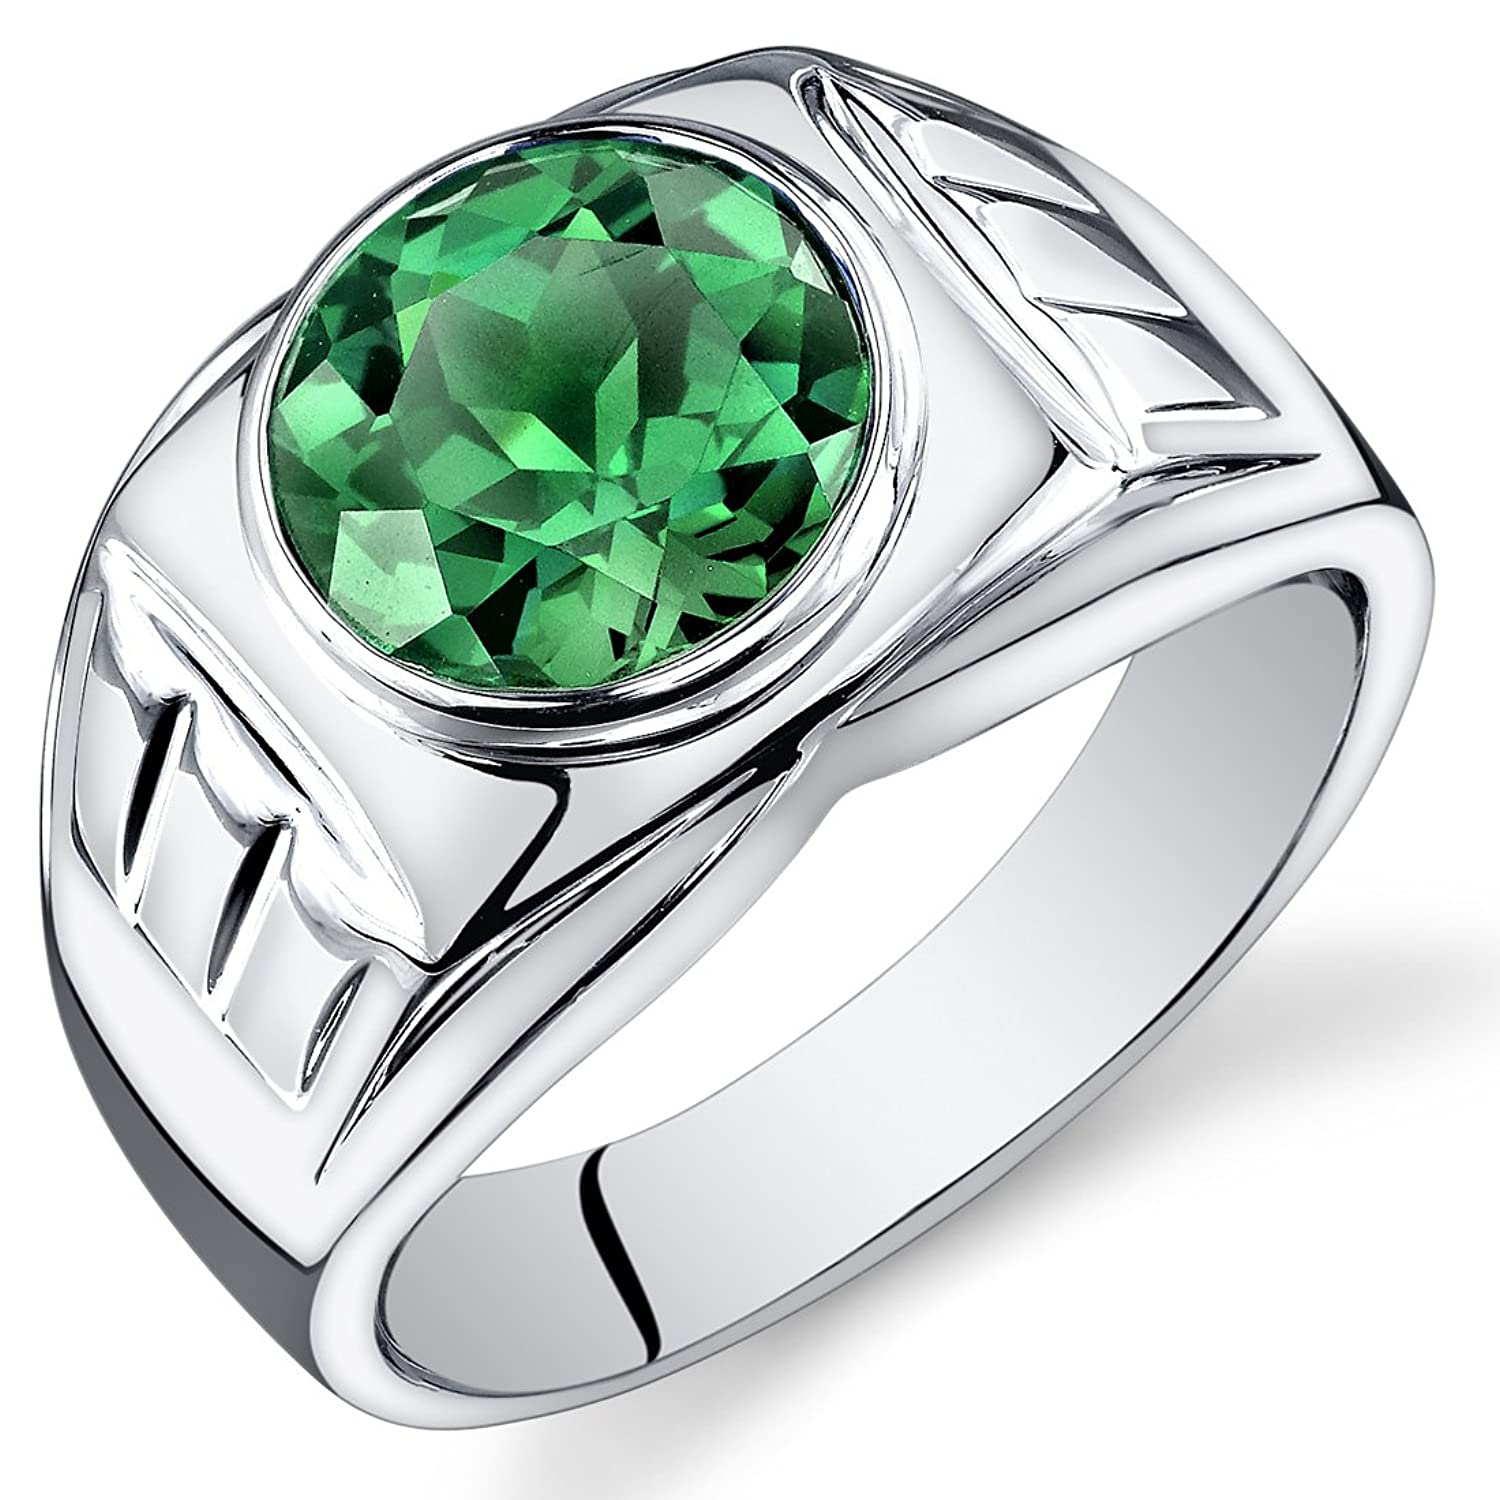 so green stone symbolizes an for will envy rings leave pin emerald with the growth that great is color engagement a you